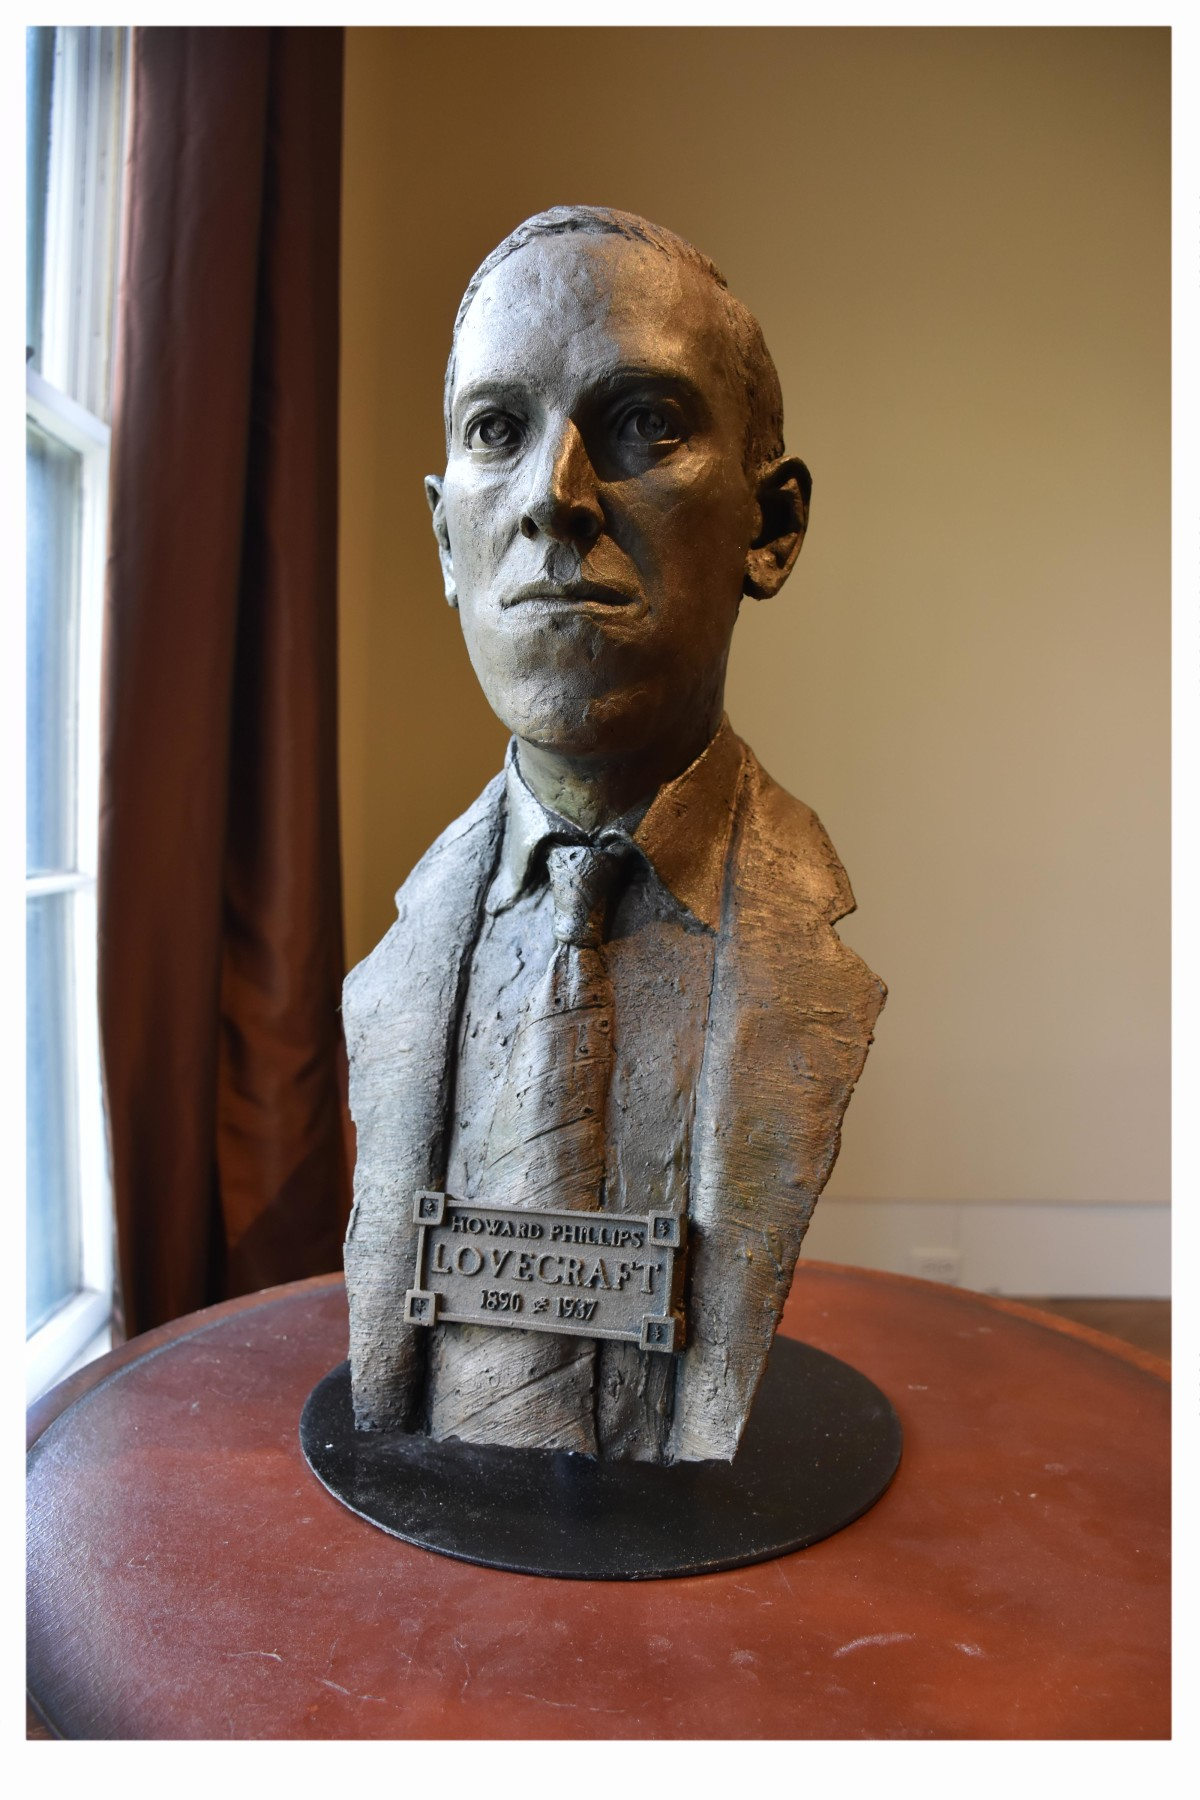 HP Lovecraft Bust